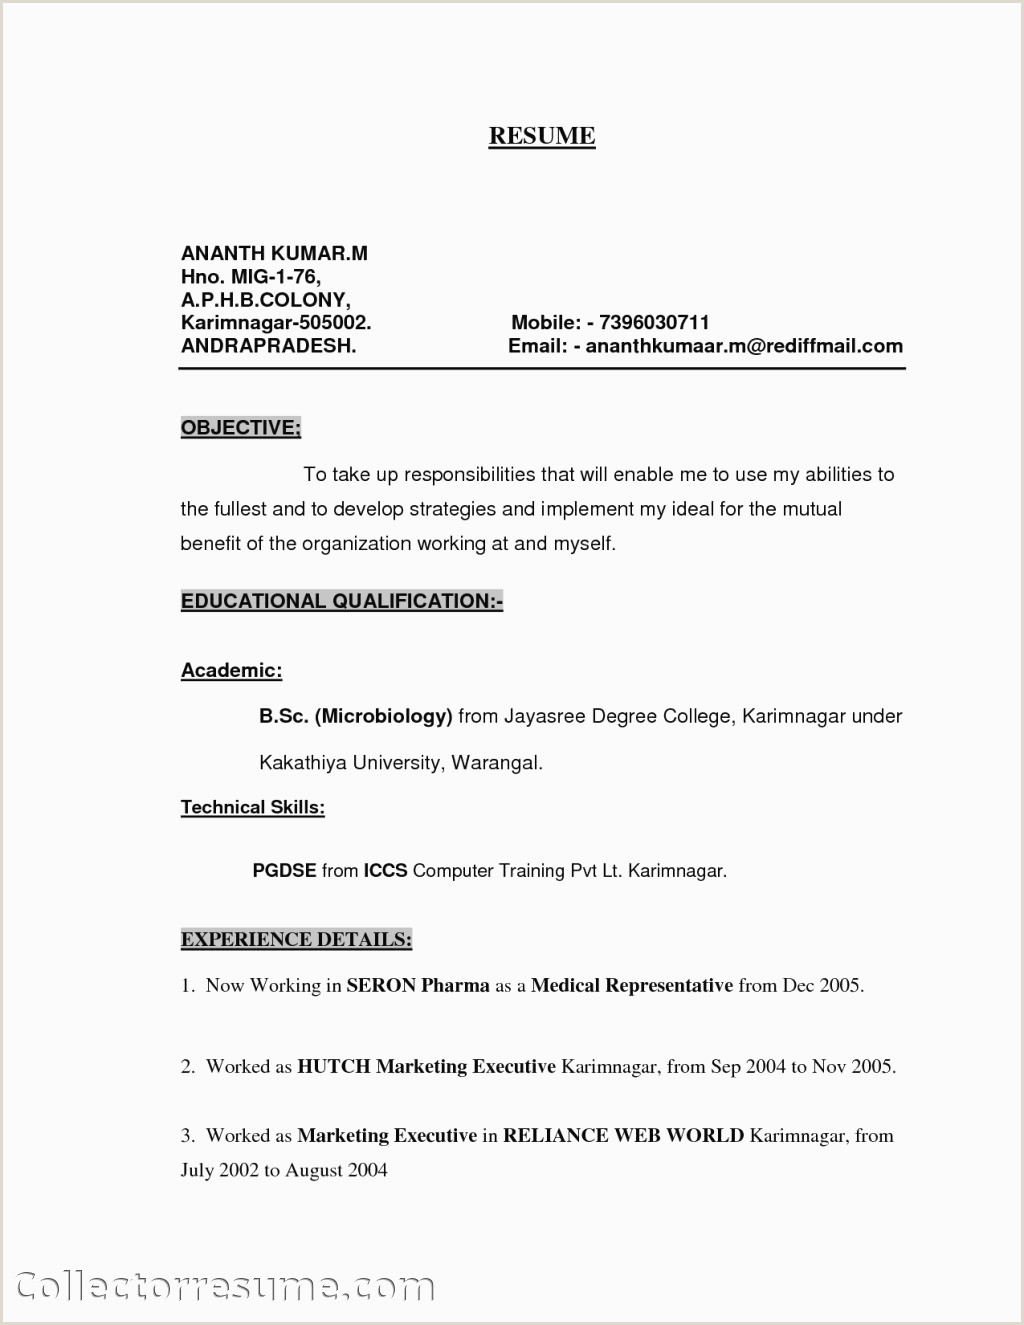 Medical Representative Resume Luxury Resume Medical Representative